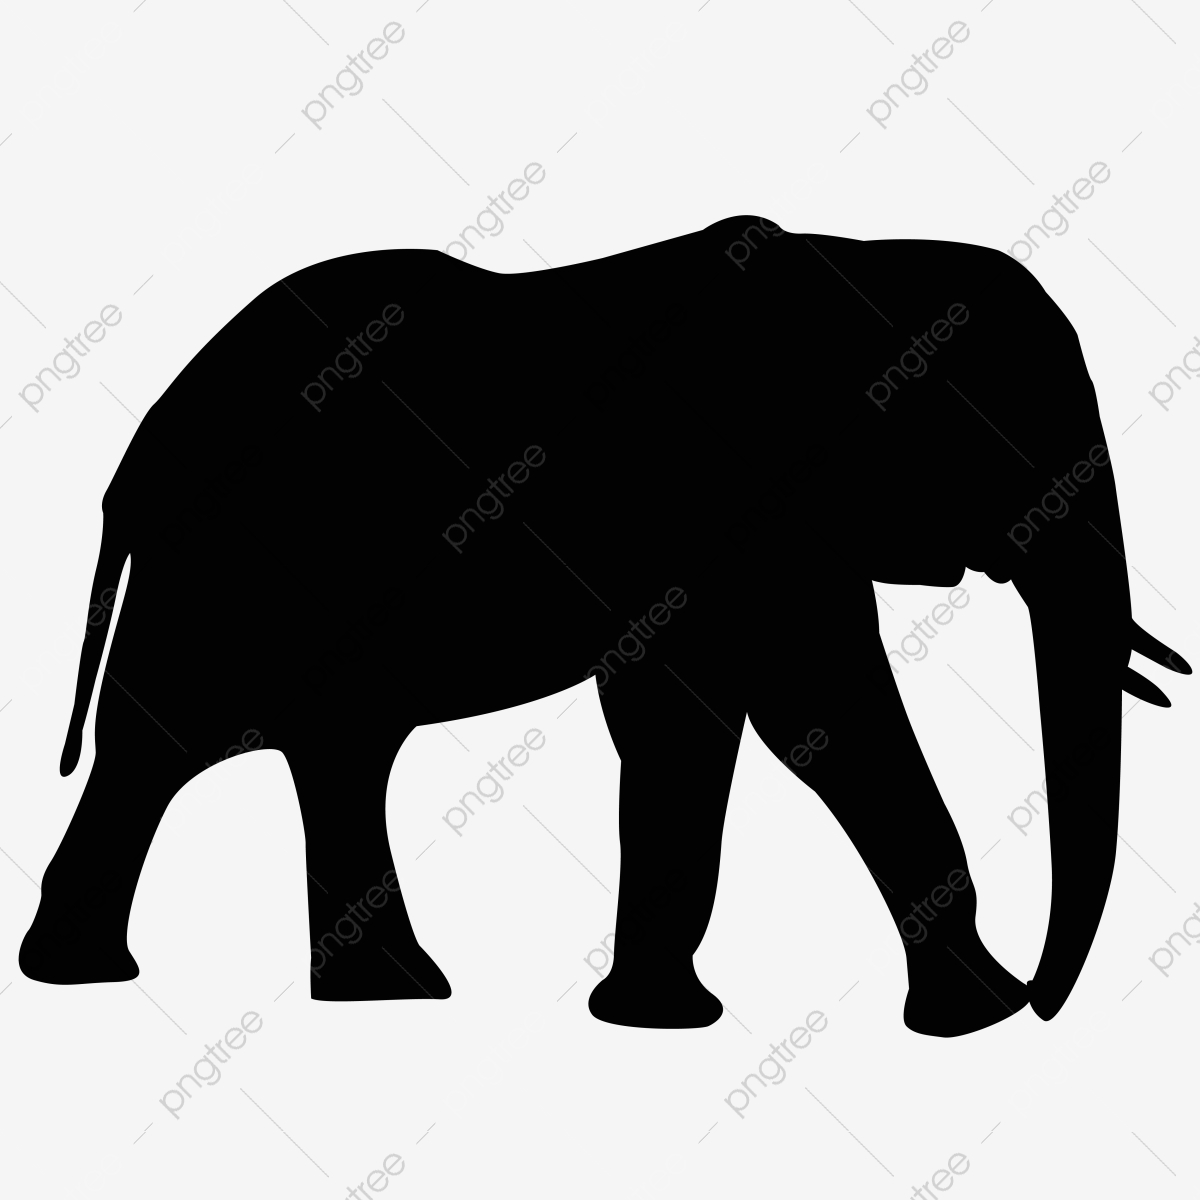 Elephant Png Vector Psd And Clipart With Transparent Background For Free Download Pngtree Find & download free graphic resources for elephant. https pngtree com freepng black silhouette of an elephant 5048311 html